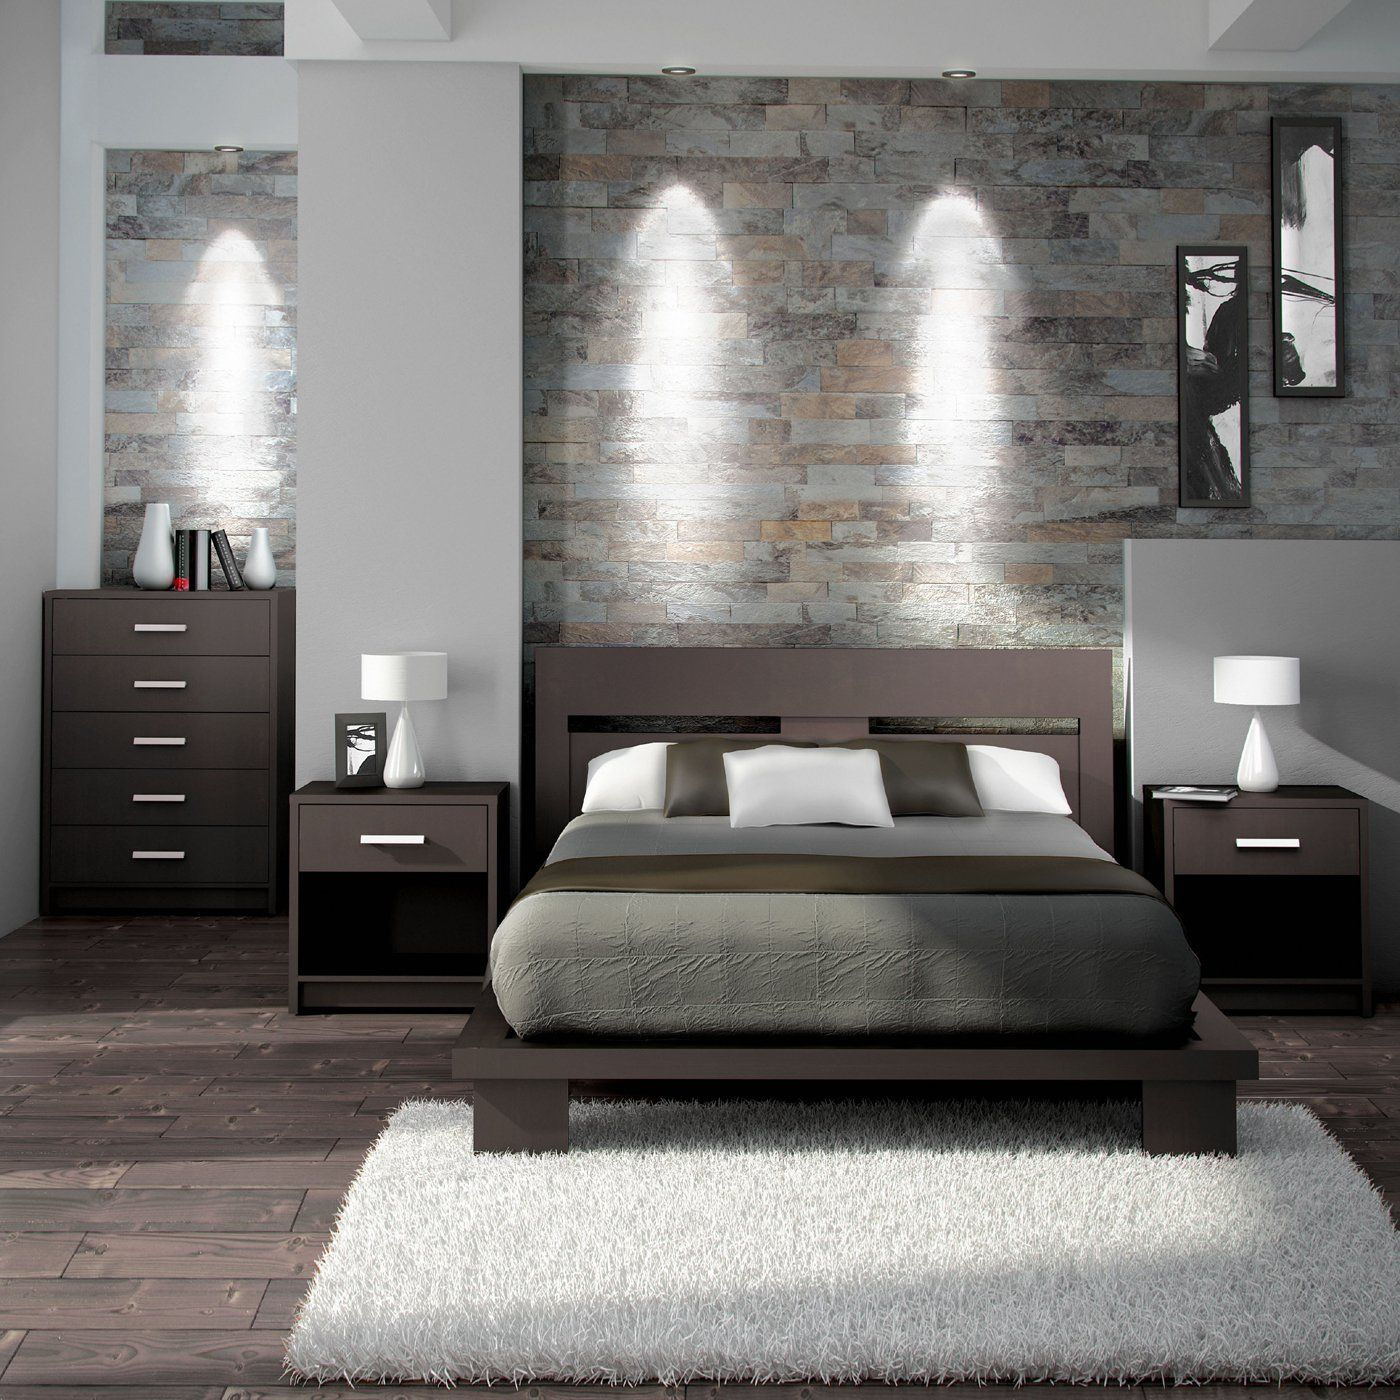 Modern bedrooms a simple and modern bedroom set in espresso brown. itu0027s made with a 100% KYNNPXC